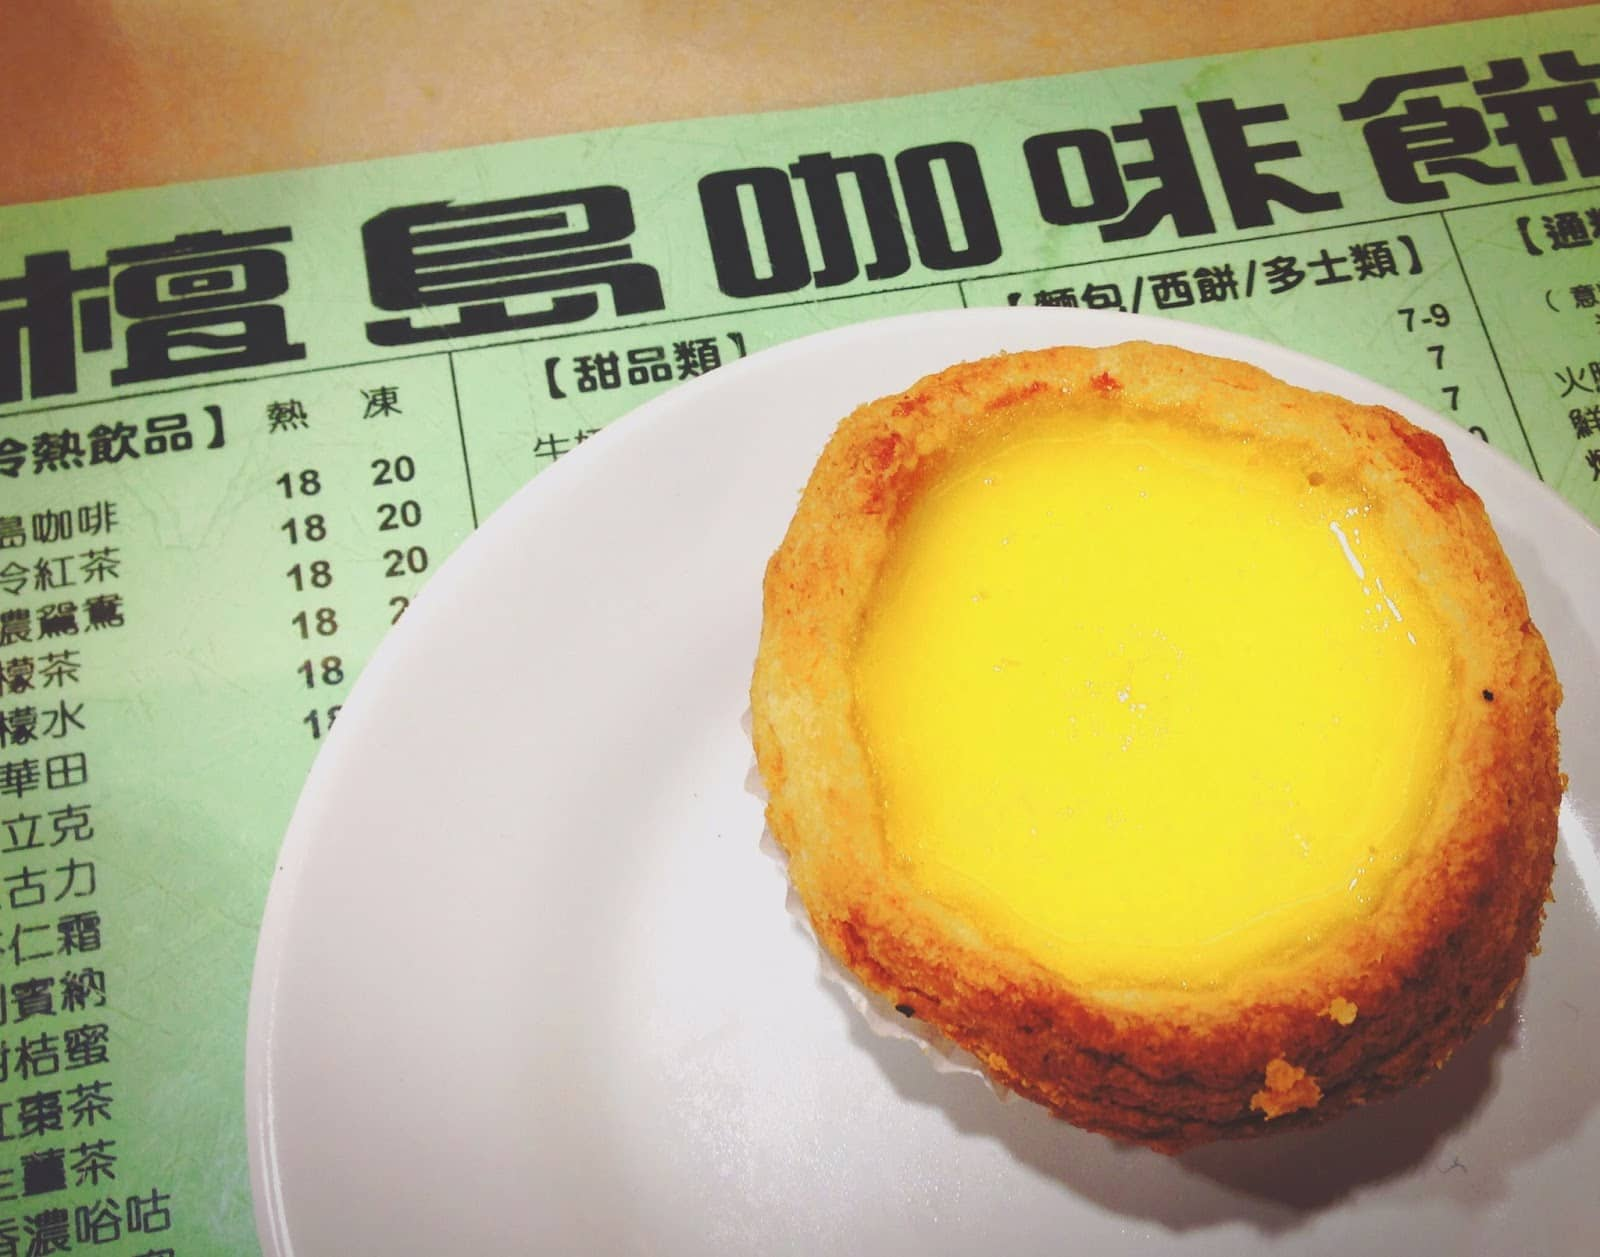 Egg Tart -   Cost around $2-3 -  The egg tart is a kind of custard tart found in Hong Kong, Portugal, Brazil, Britain, and various Asian countries, which consists of an outer pastry crust and is filled with egg custard and baked. This is one of many dished that Hong Kong is famous for. You can find these almost anywhere. These are great for breakfast, a snack, or dessert.